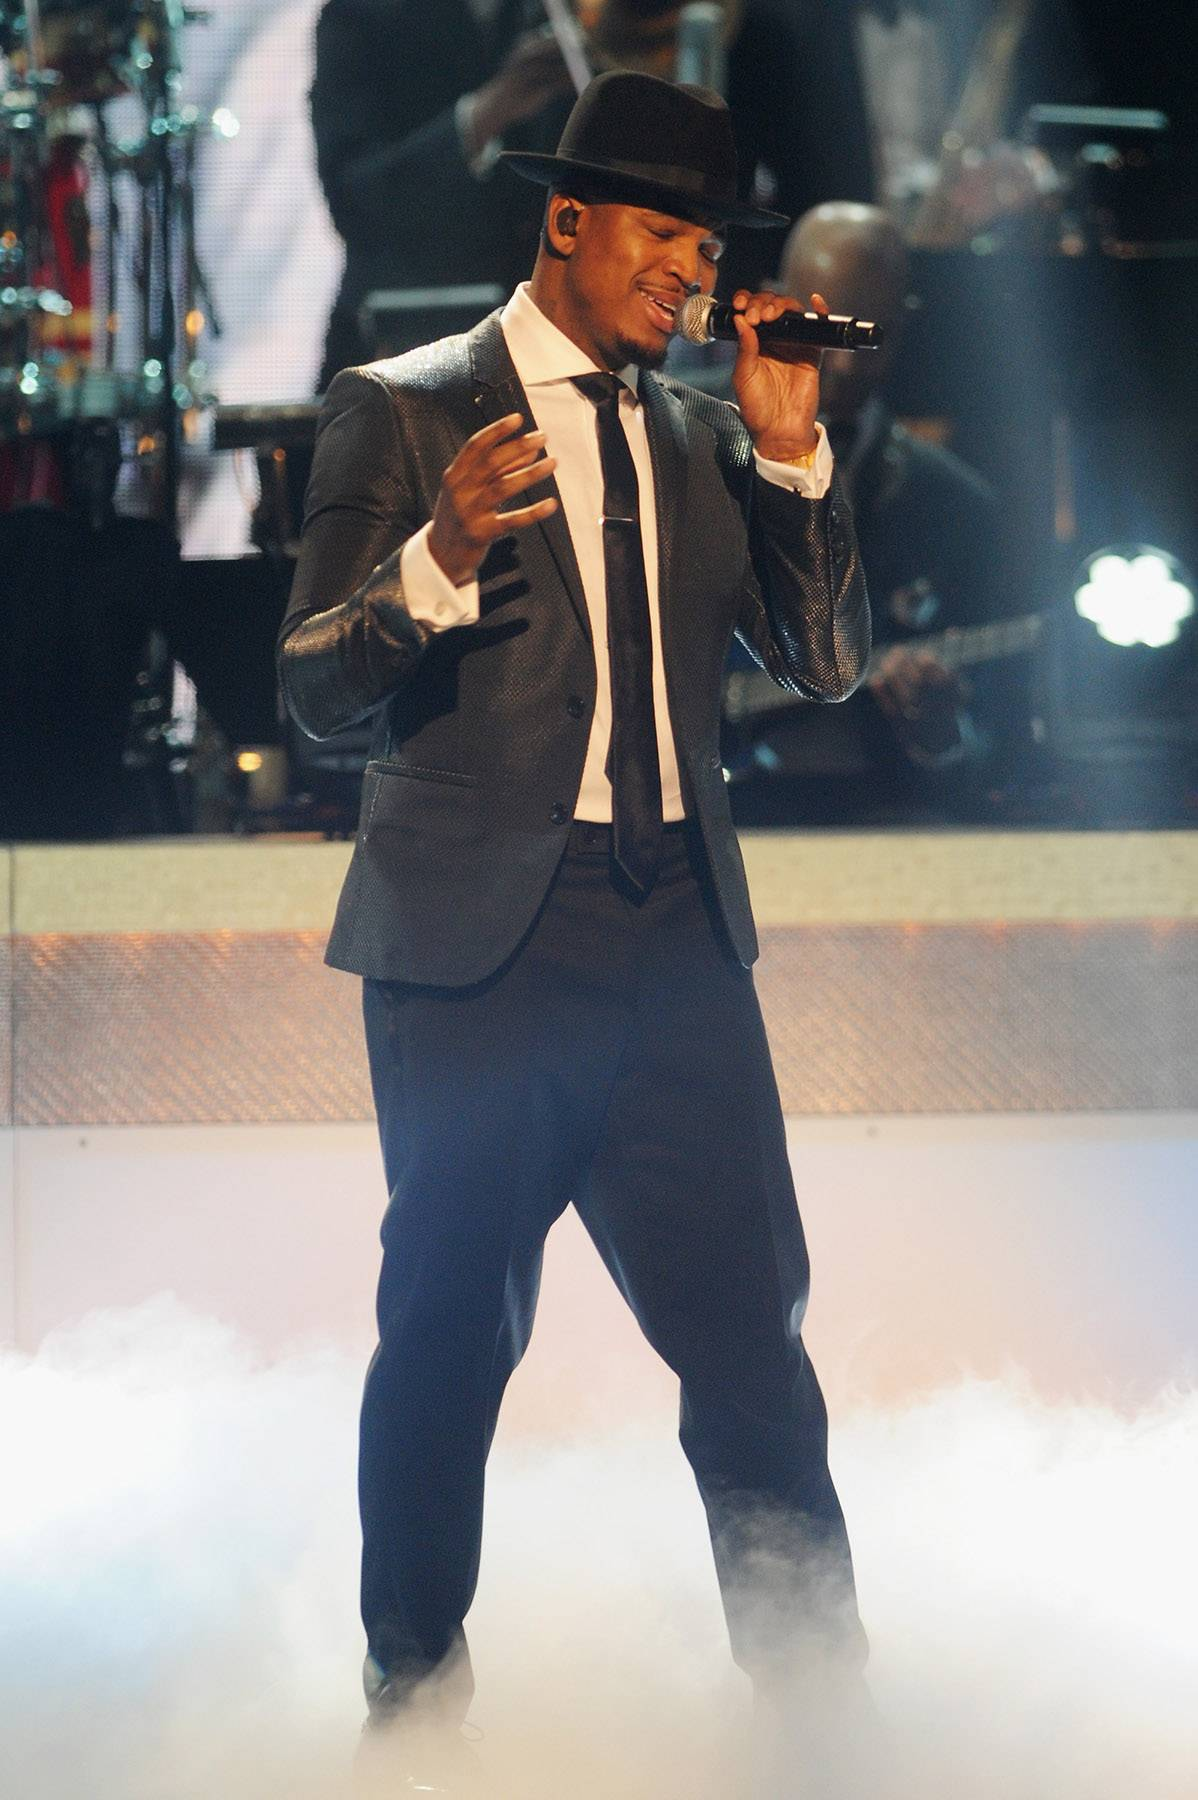 """Giving Us Something We Can Feel  - R&B singer Ne-Yo performs """"Religious/Ratchet Wit Yo Friends"""" off hisNon-Fiction album. (Photo: Brad Barket/BET/Getty Images for BET)"""